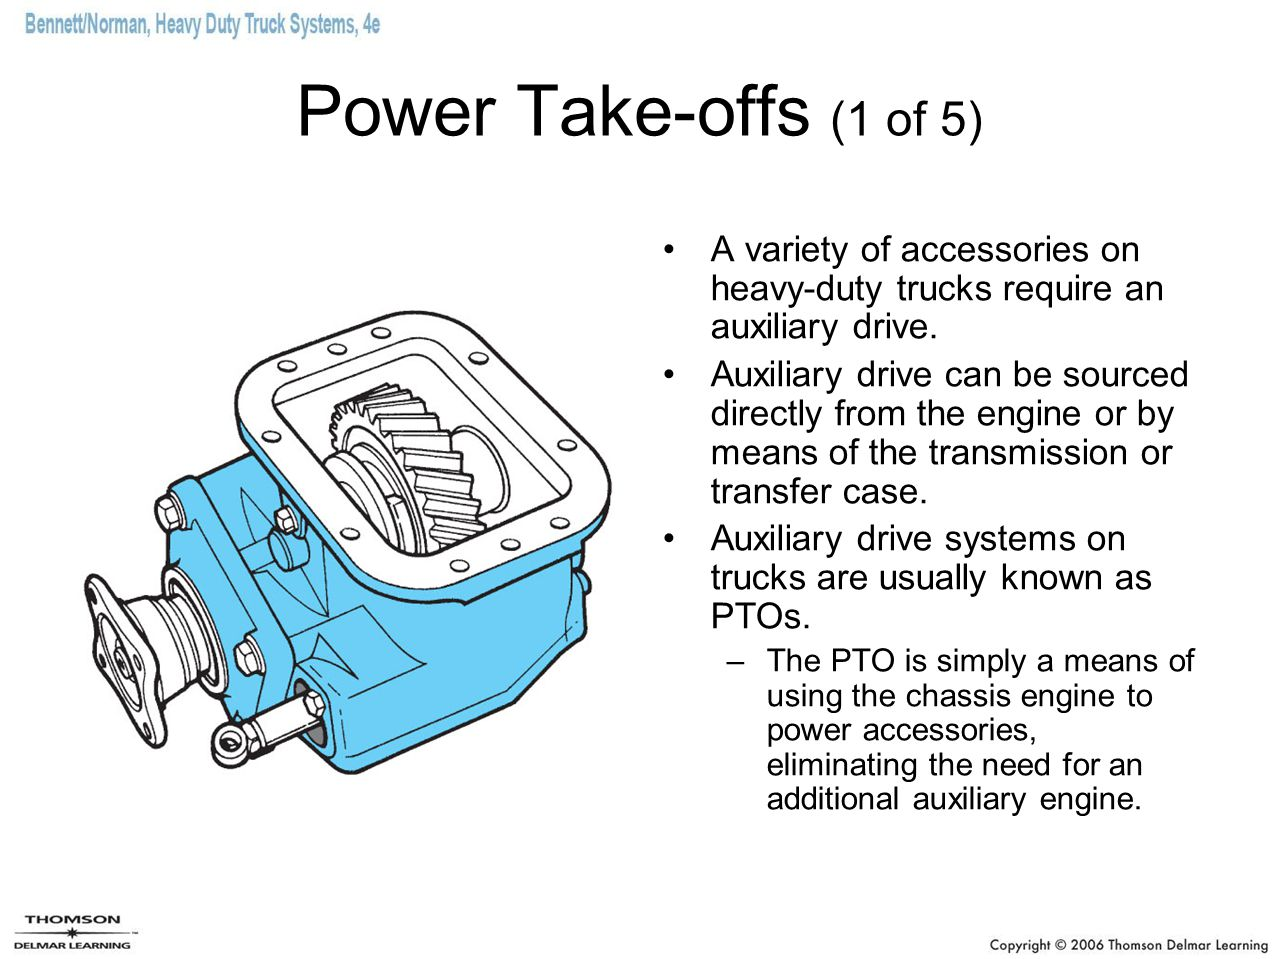 Power Take-offs (1 of 5) A variety of accessories on heavy-duty trucks require an auxiliary drive.